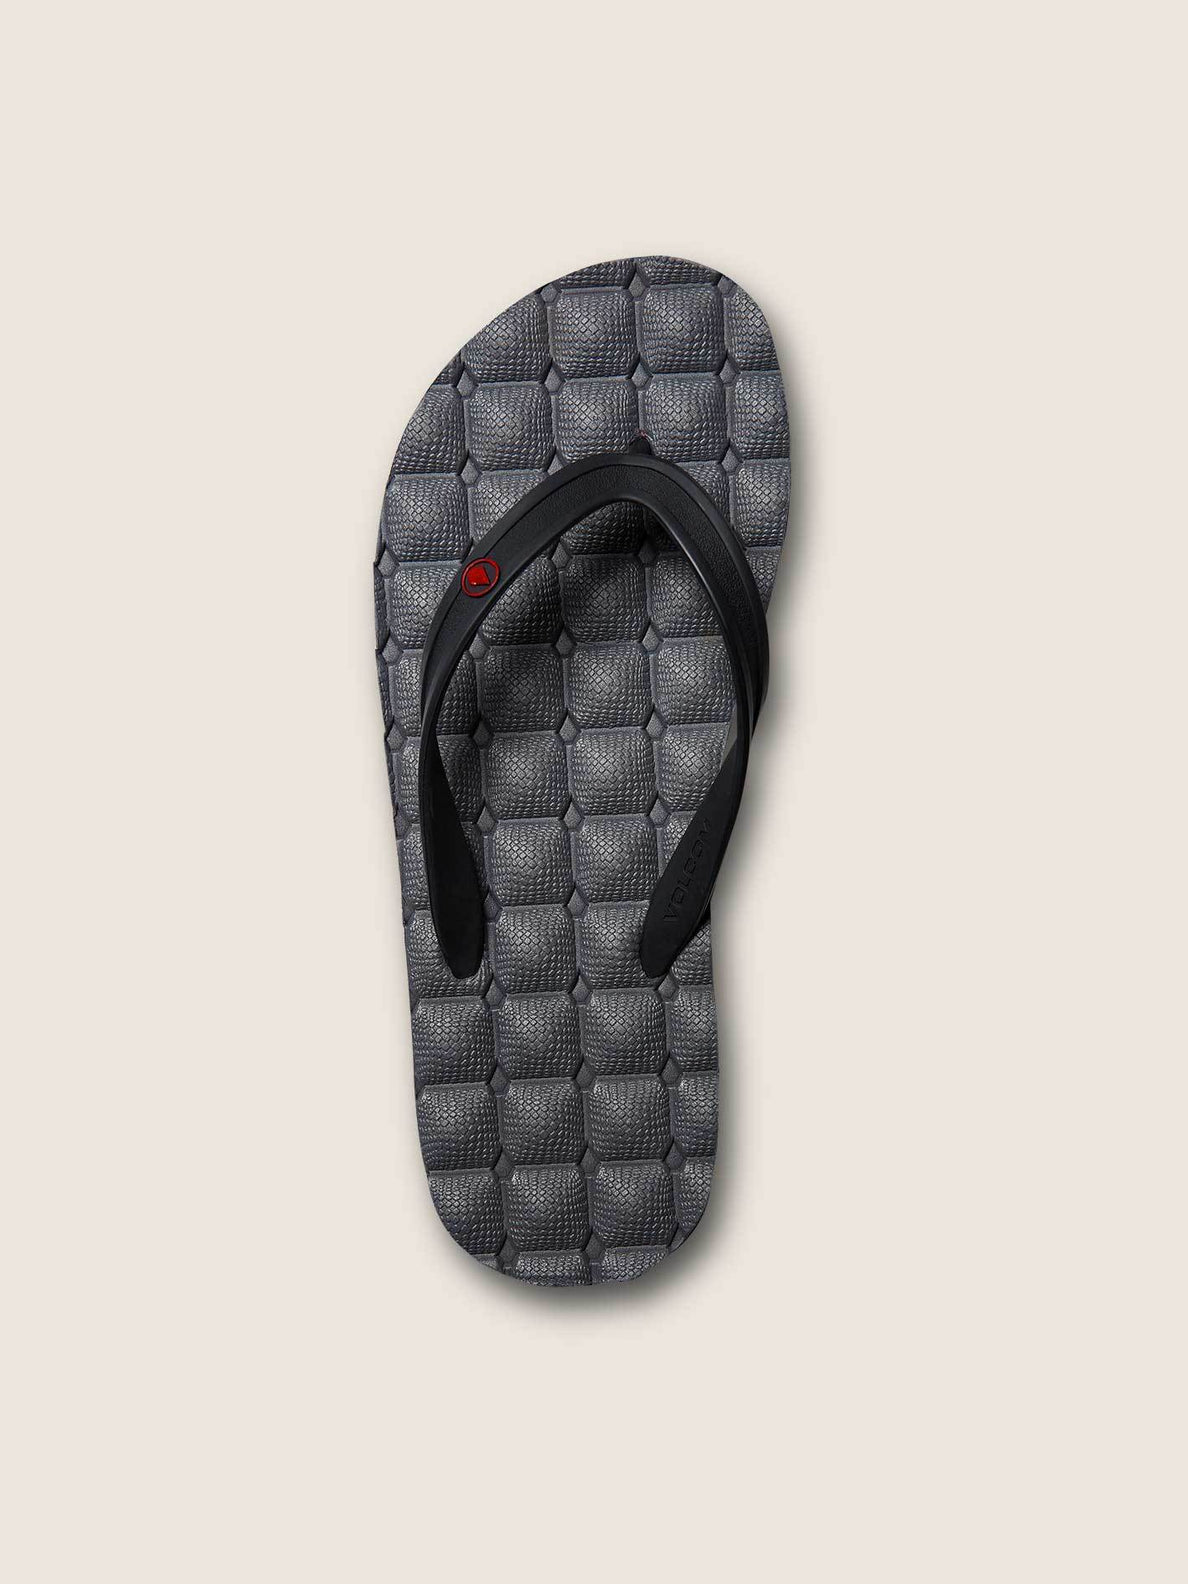 Recliner Rubber 2 Sandals In Pewter, Alternate View